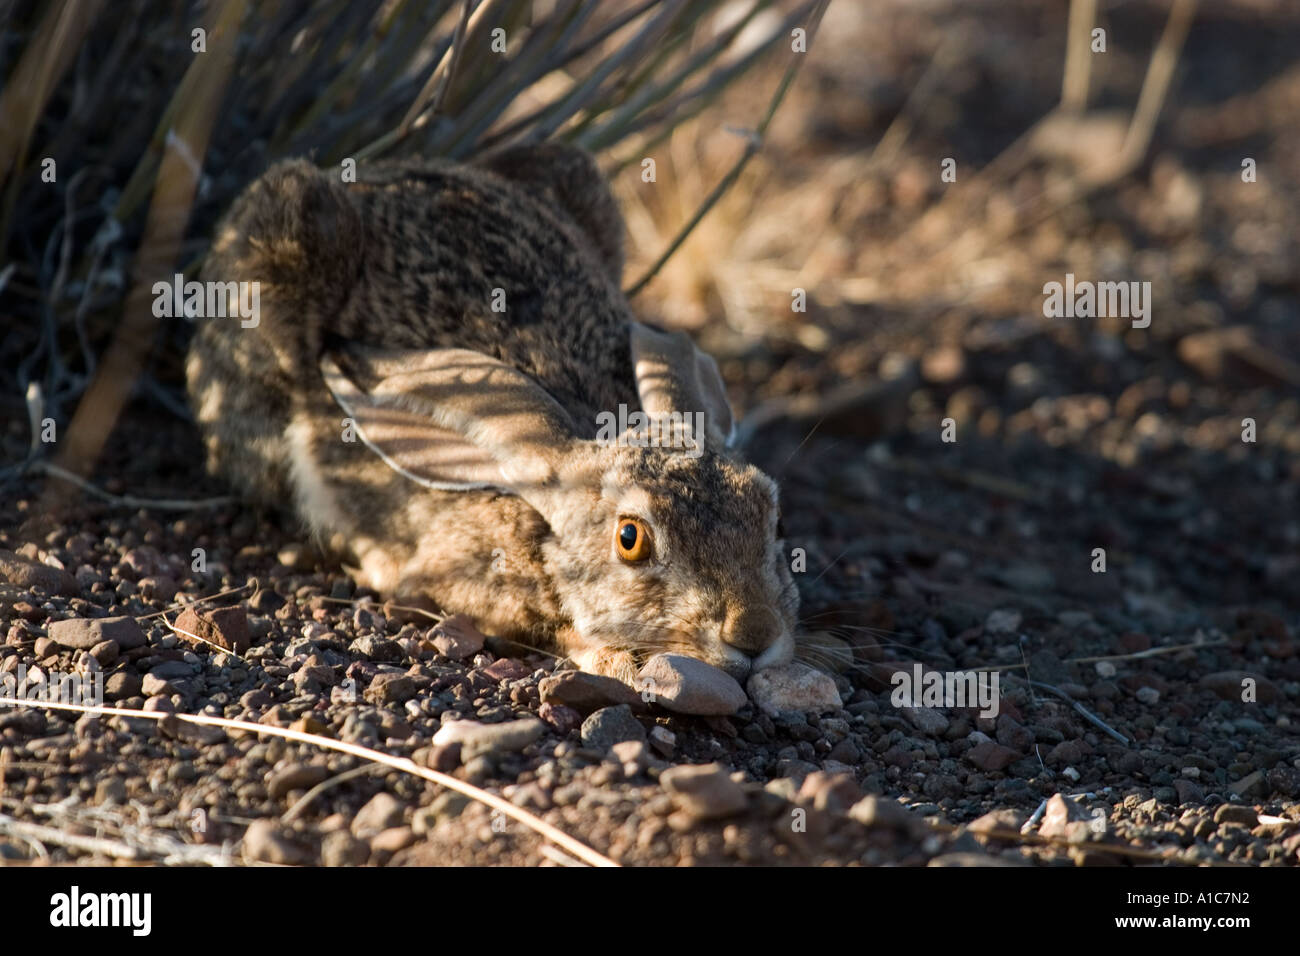 Scrub Hare, frozen to lessen detection in Damaraland, Western Desert, Namibia, Africa - Stock Image